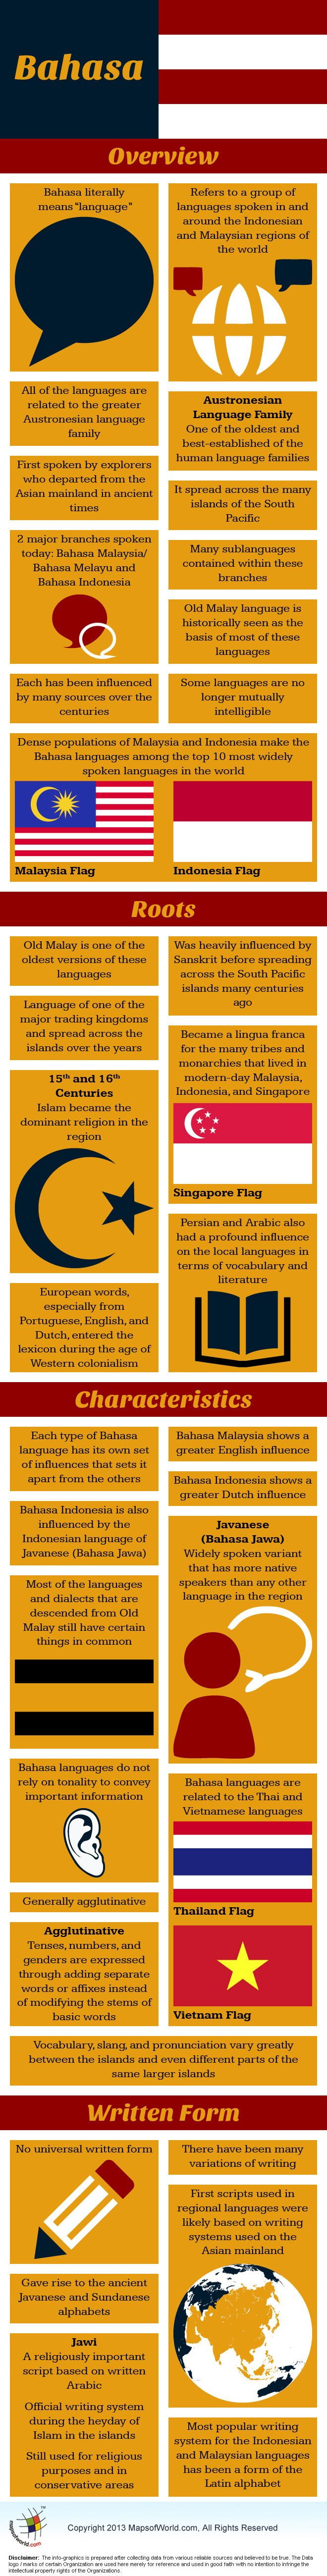 Infographic of Bahasa or Malay language.